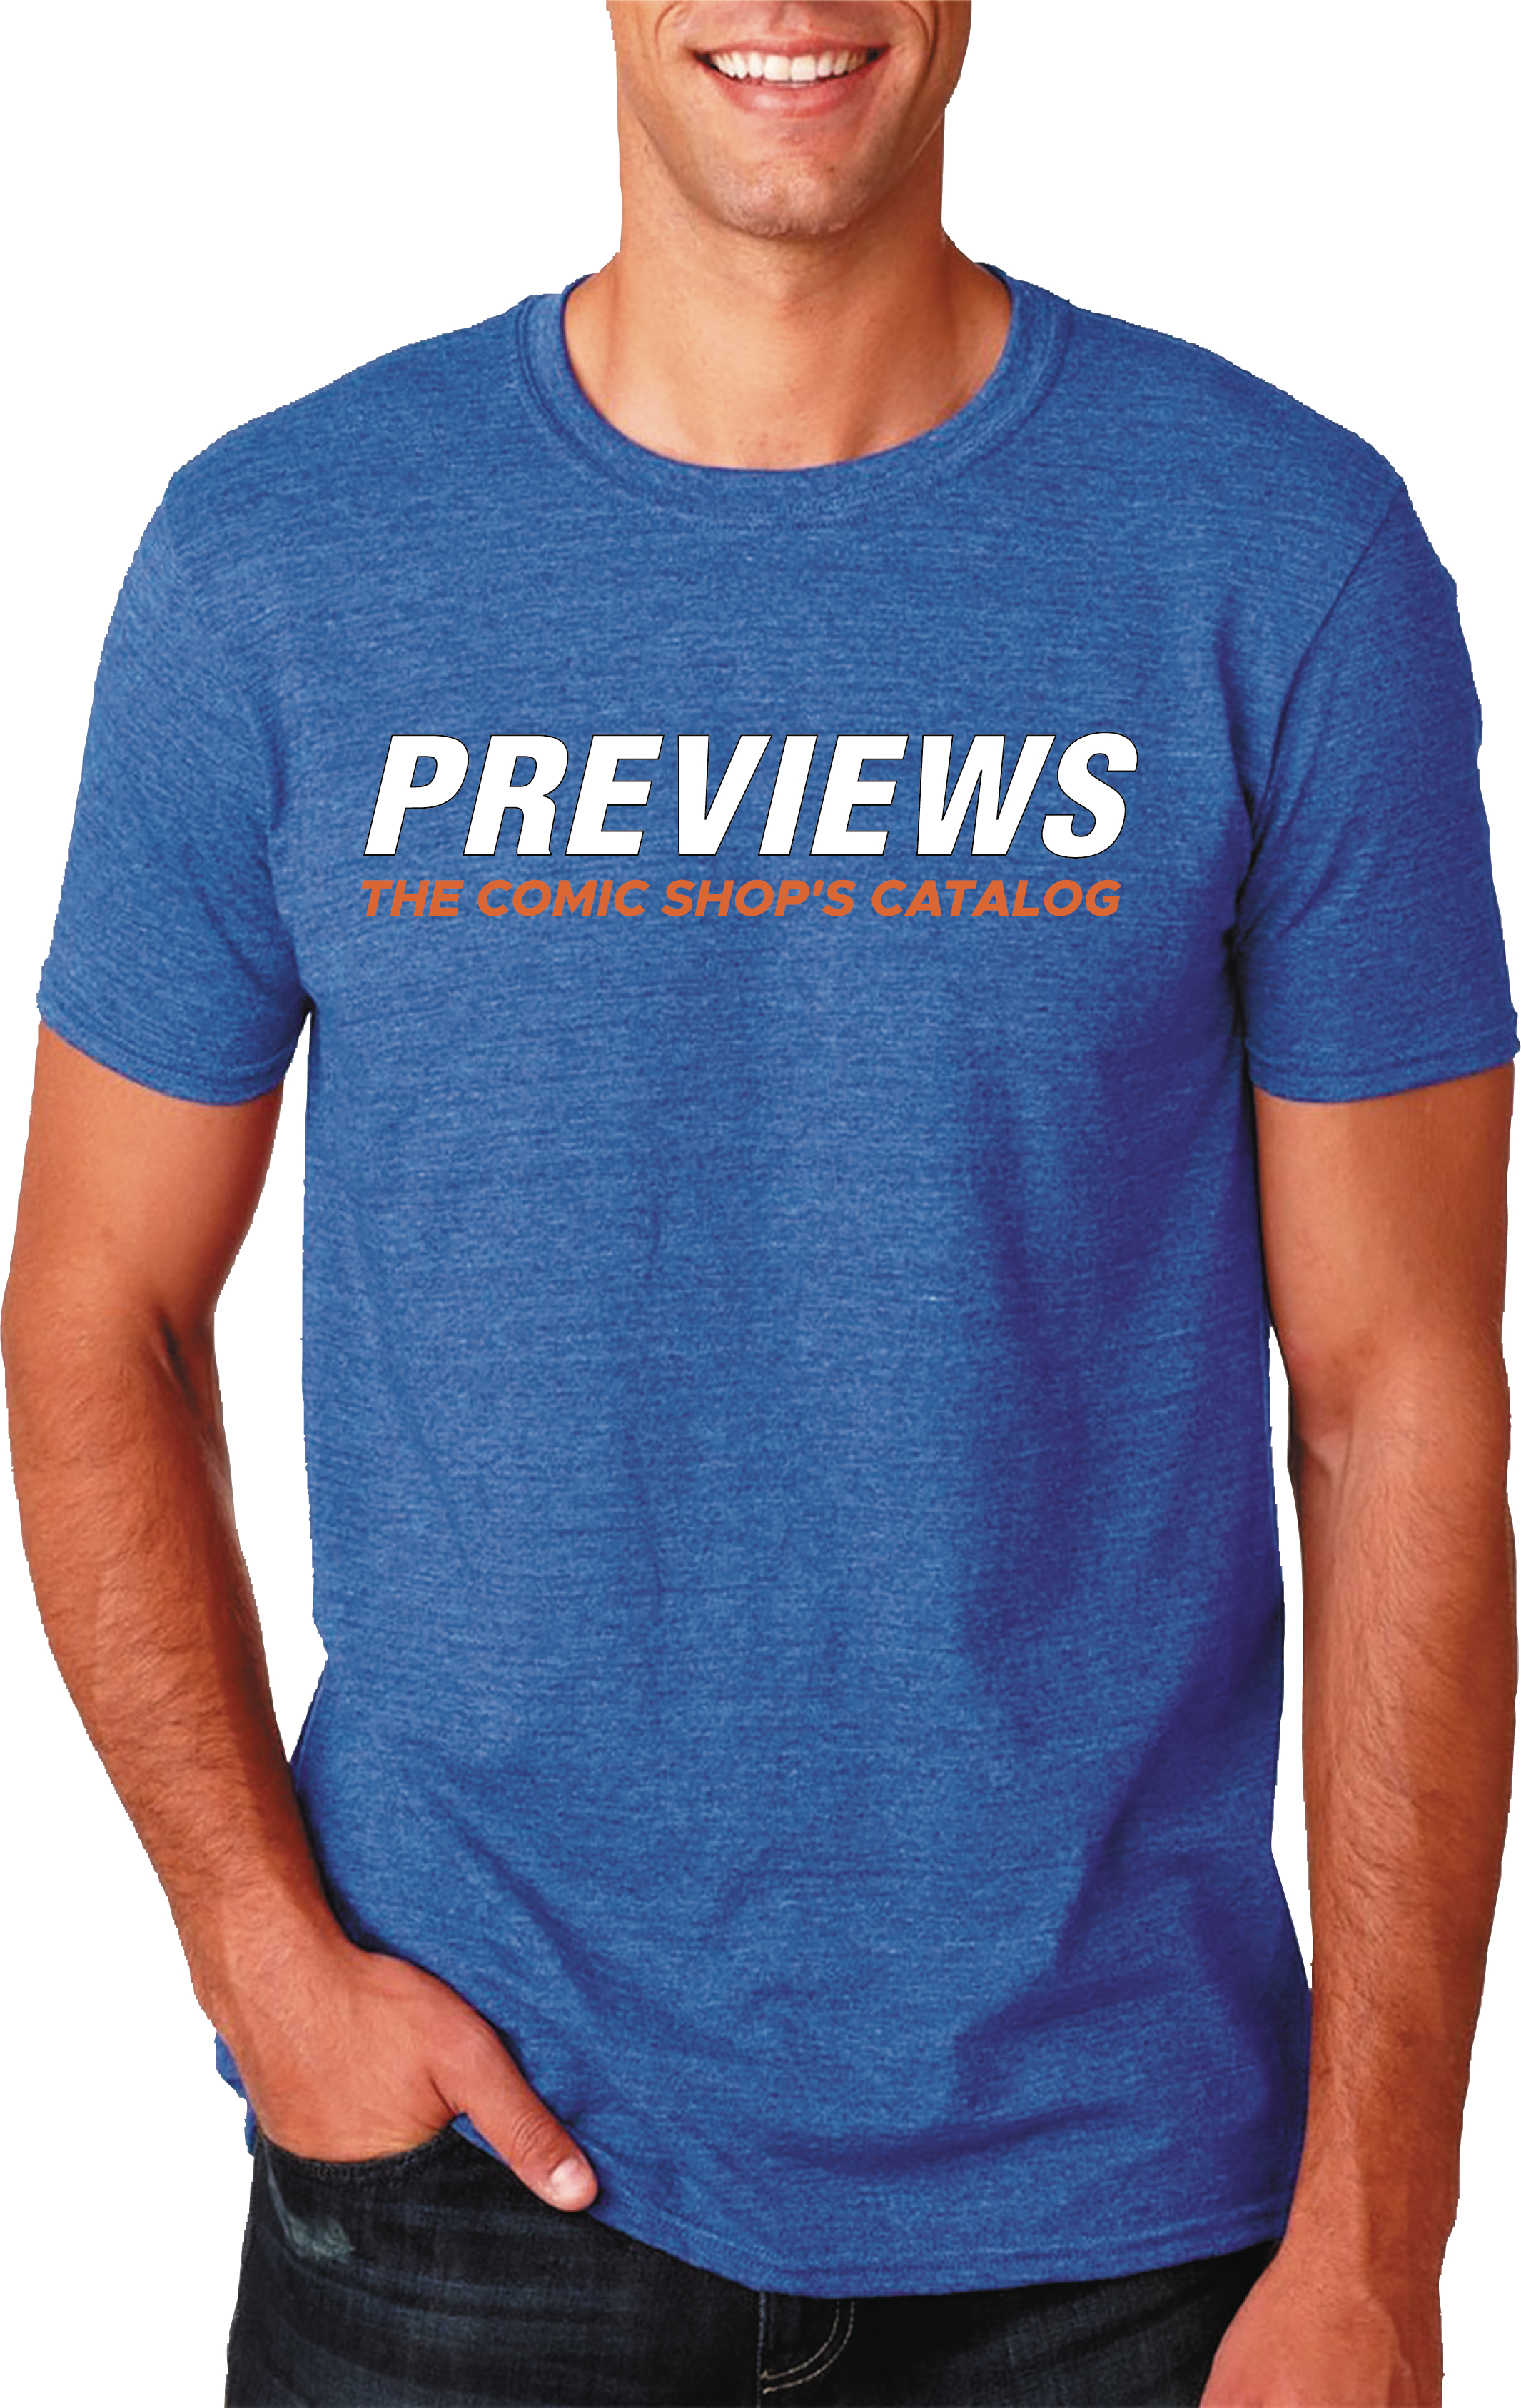 PREVIEWS LOGO HEATHER BLUE T/S MED